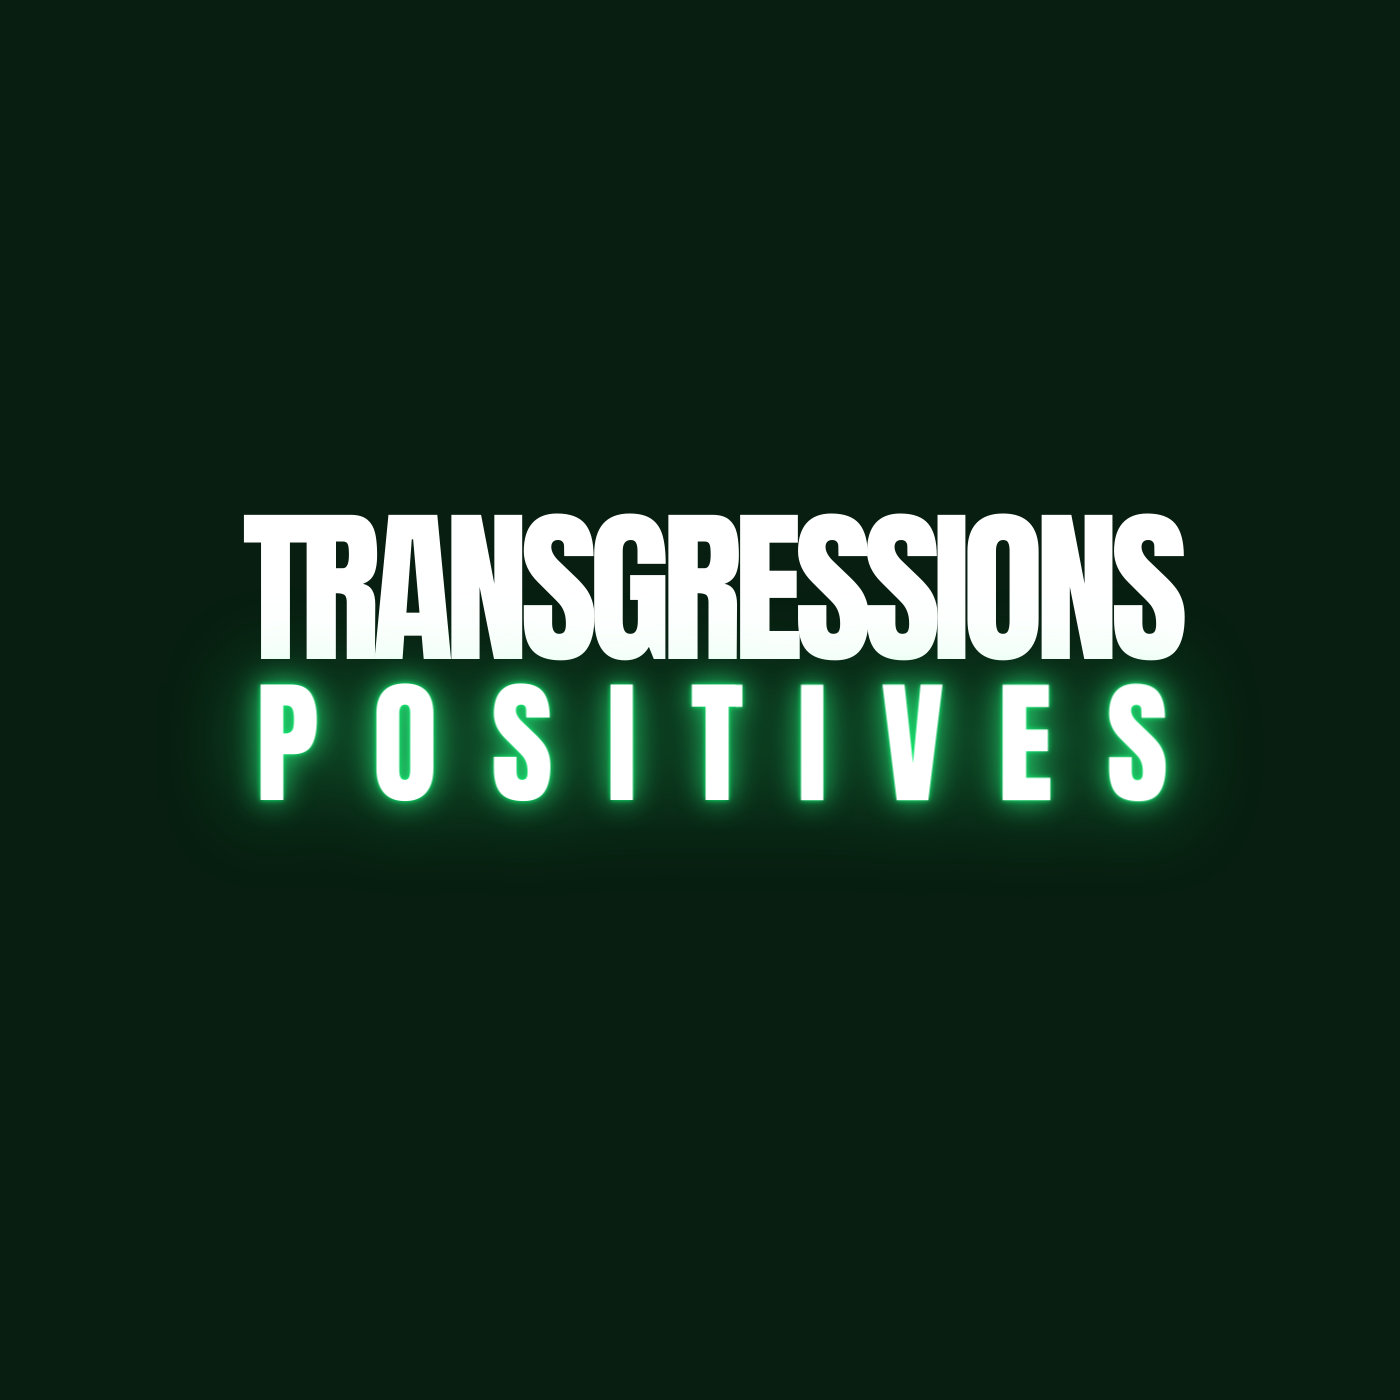 Transgressions Positives